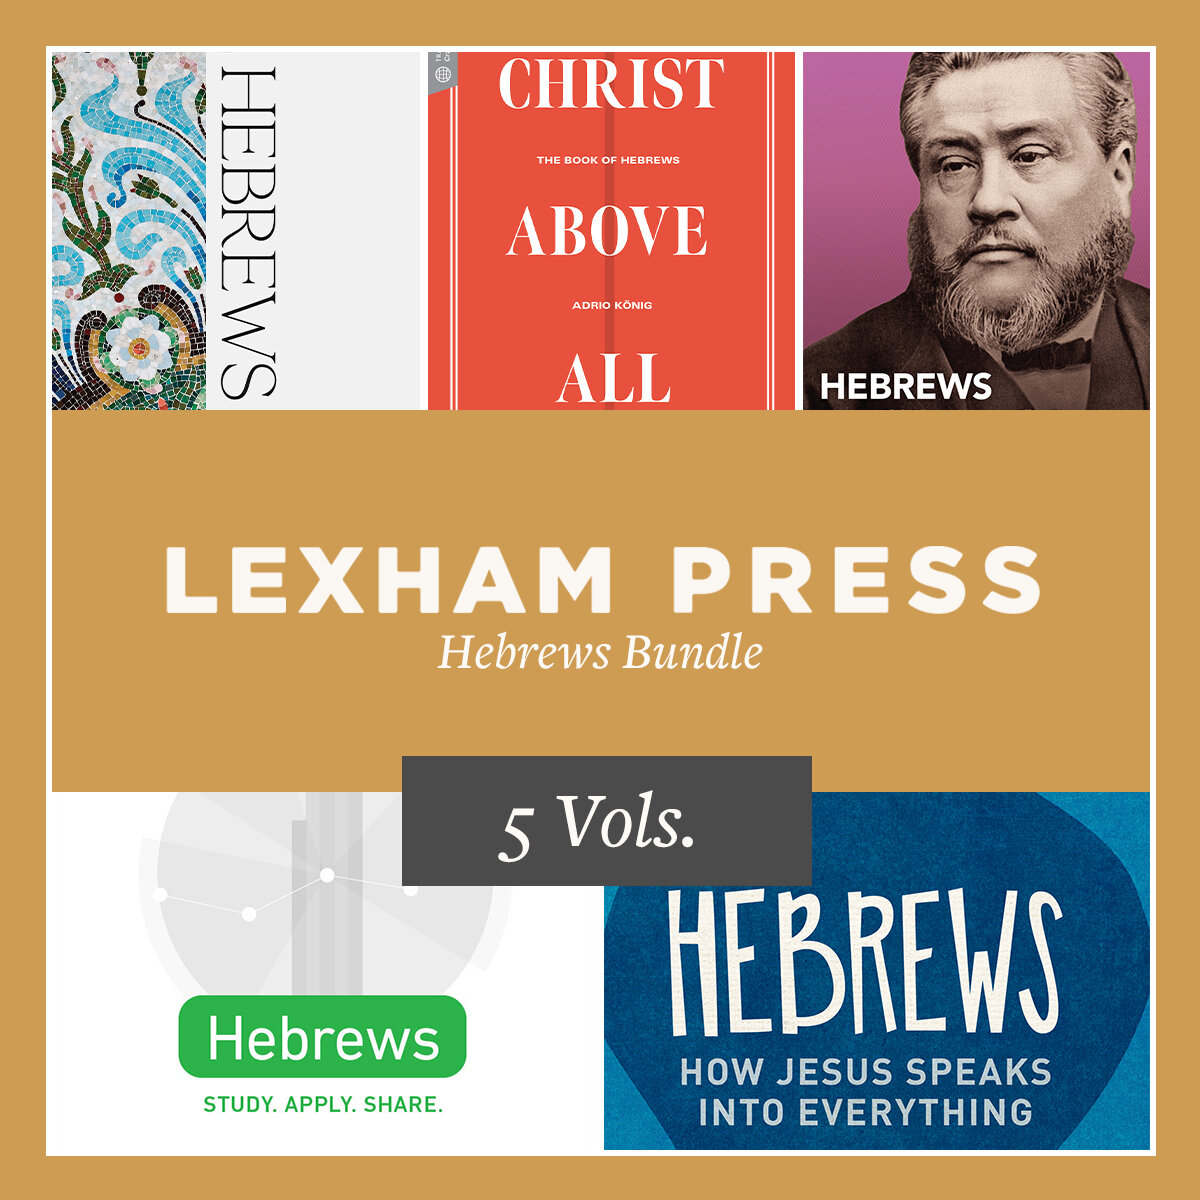 Lexham Press Hebrews Bundle (5 vols.)